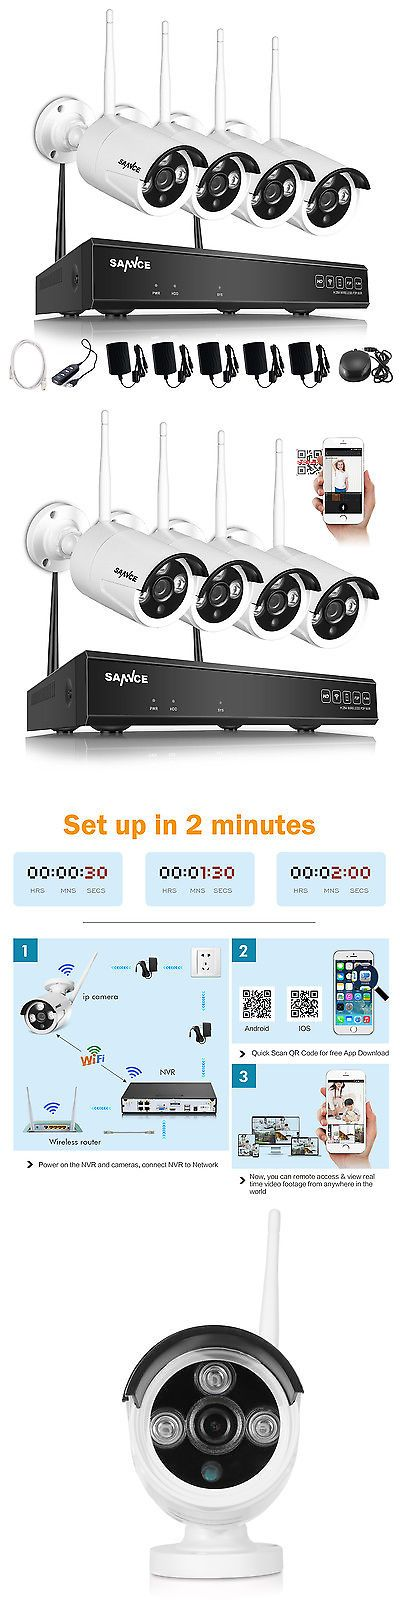 Security Cameras: Sannce 4Ch 720P Hd Nvr Wireless Ip Network Indoor Outdoor Security Camera System BUY IT NOW ONLY: $169.99